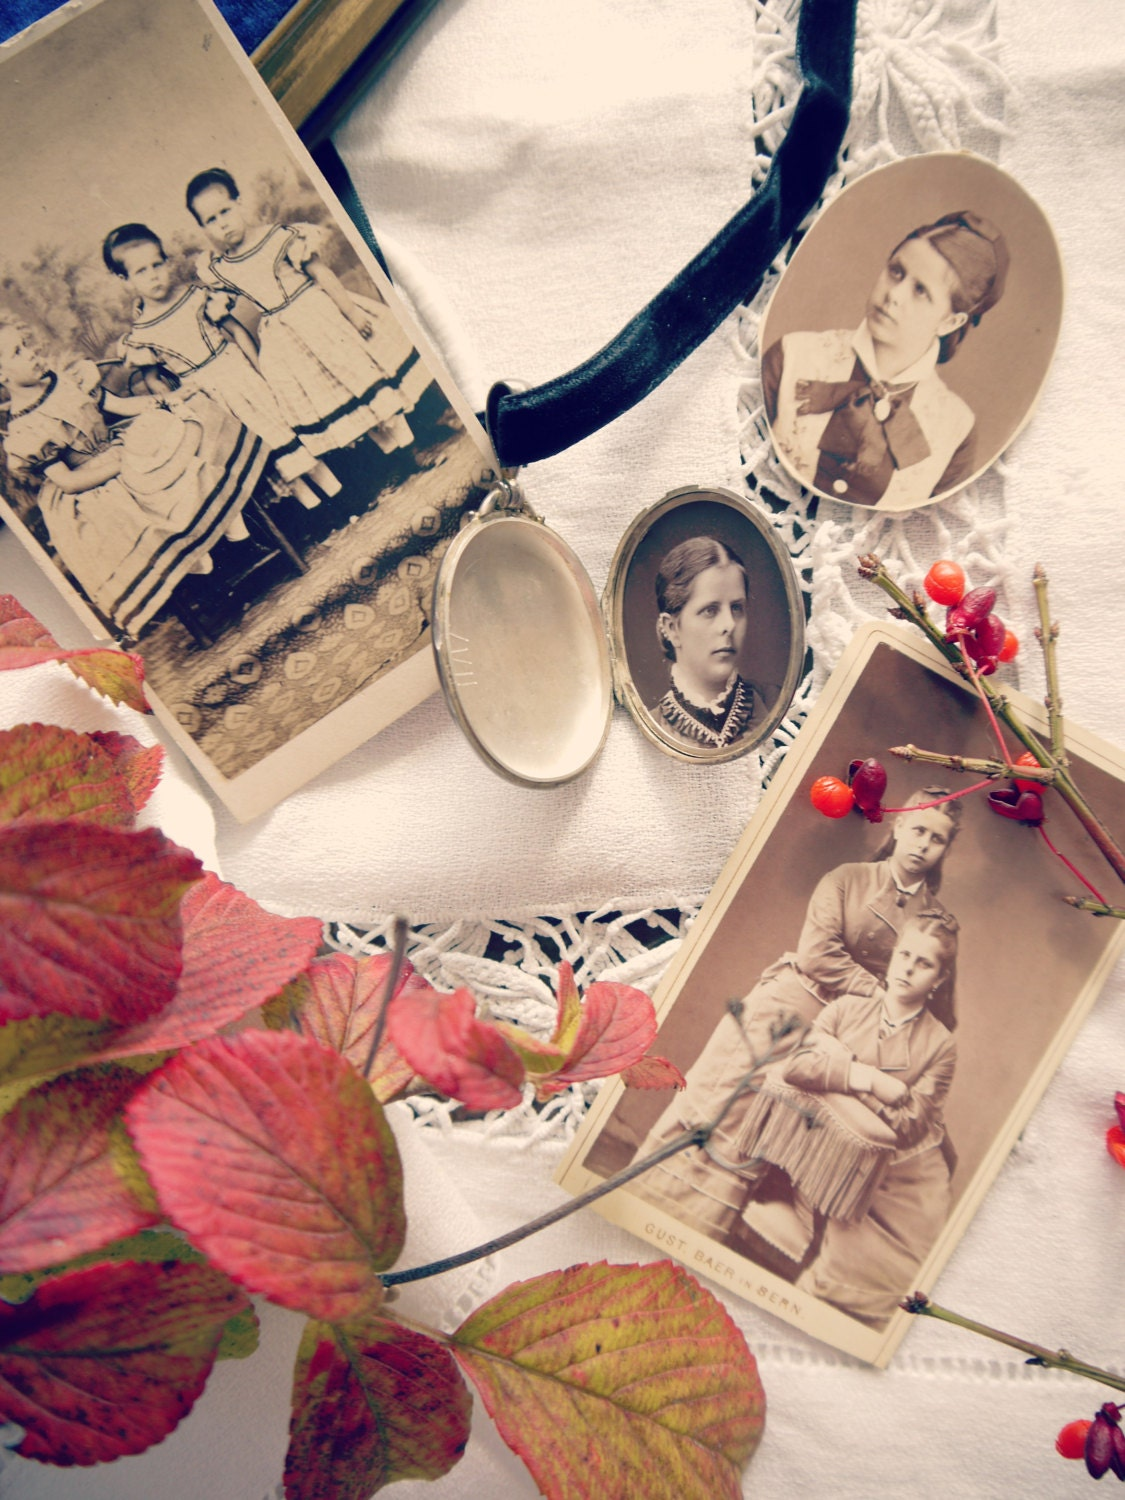 Paulines locket with all the pictures of her. She had a twin sister (Irma) and an older sister.